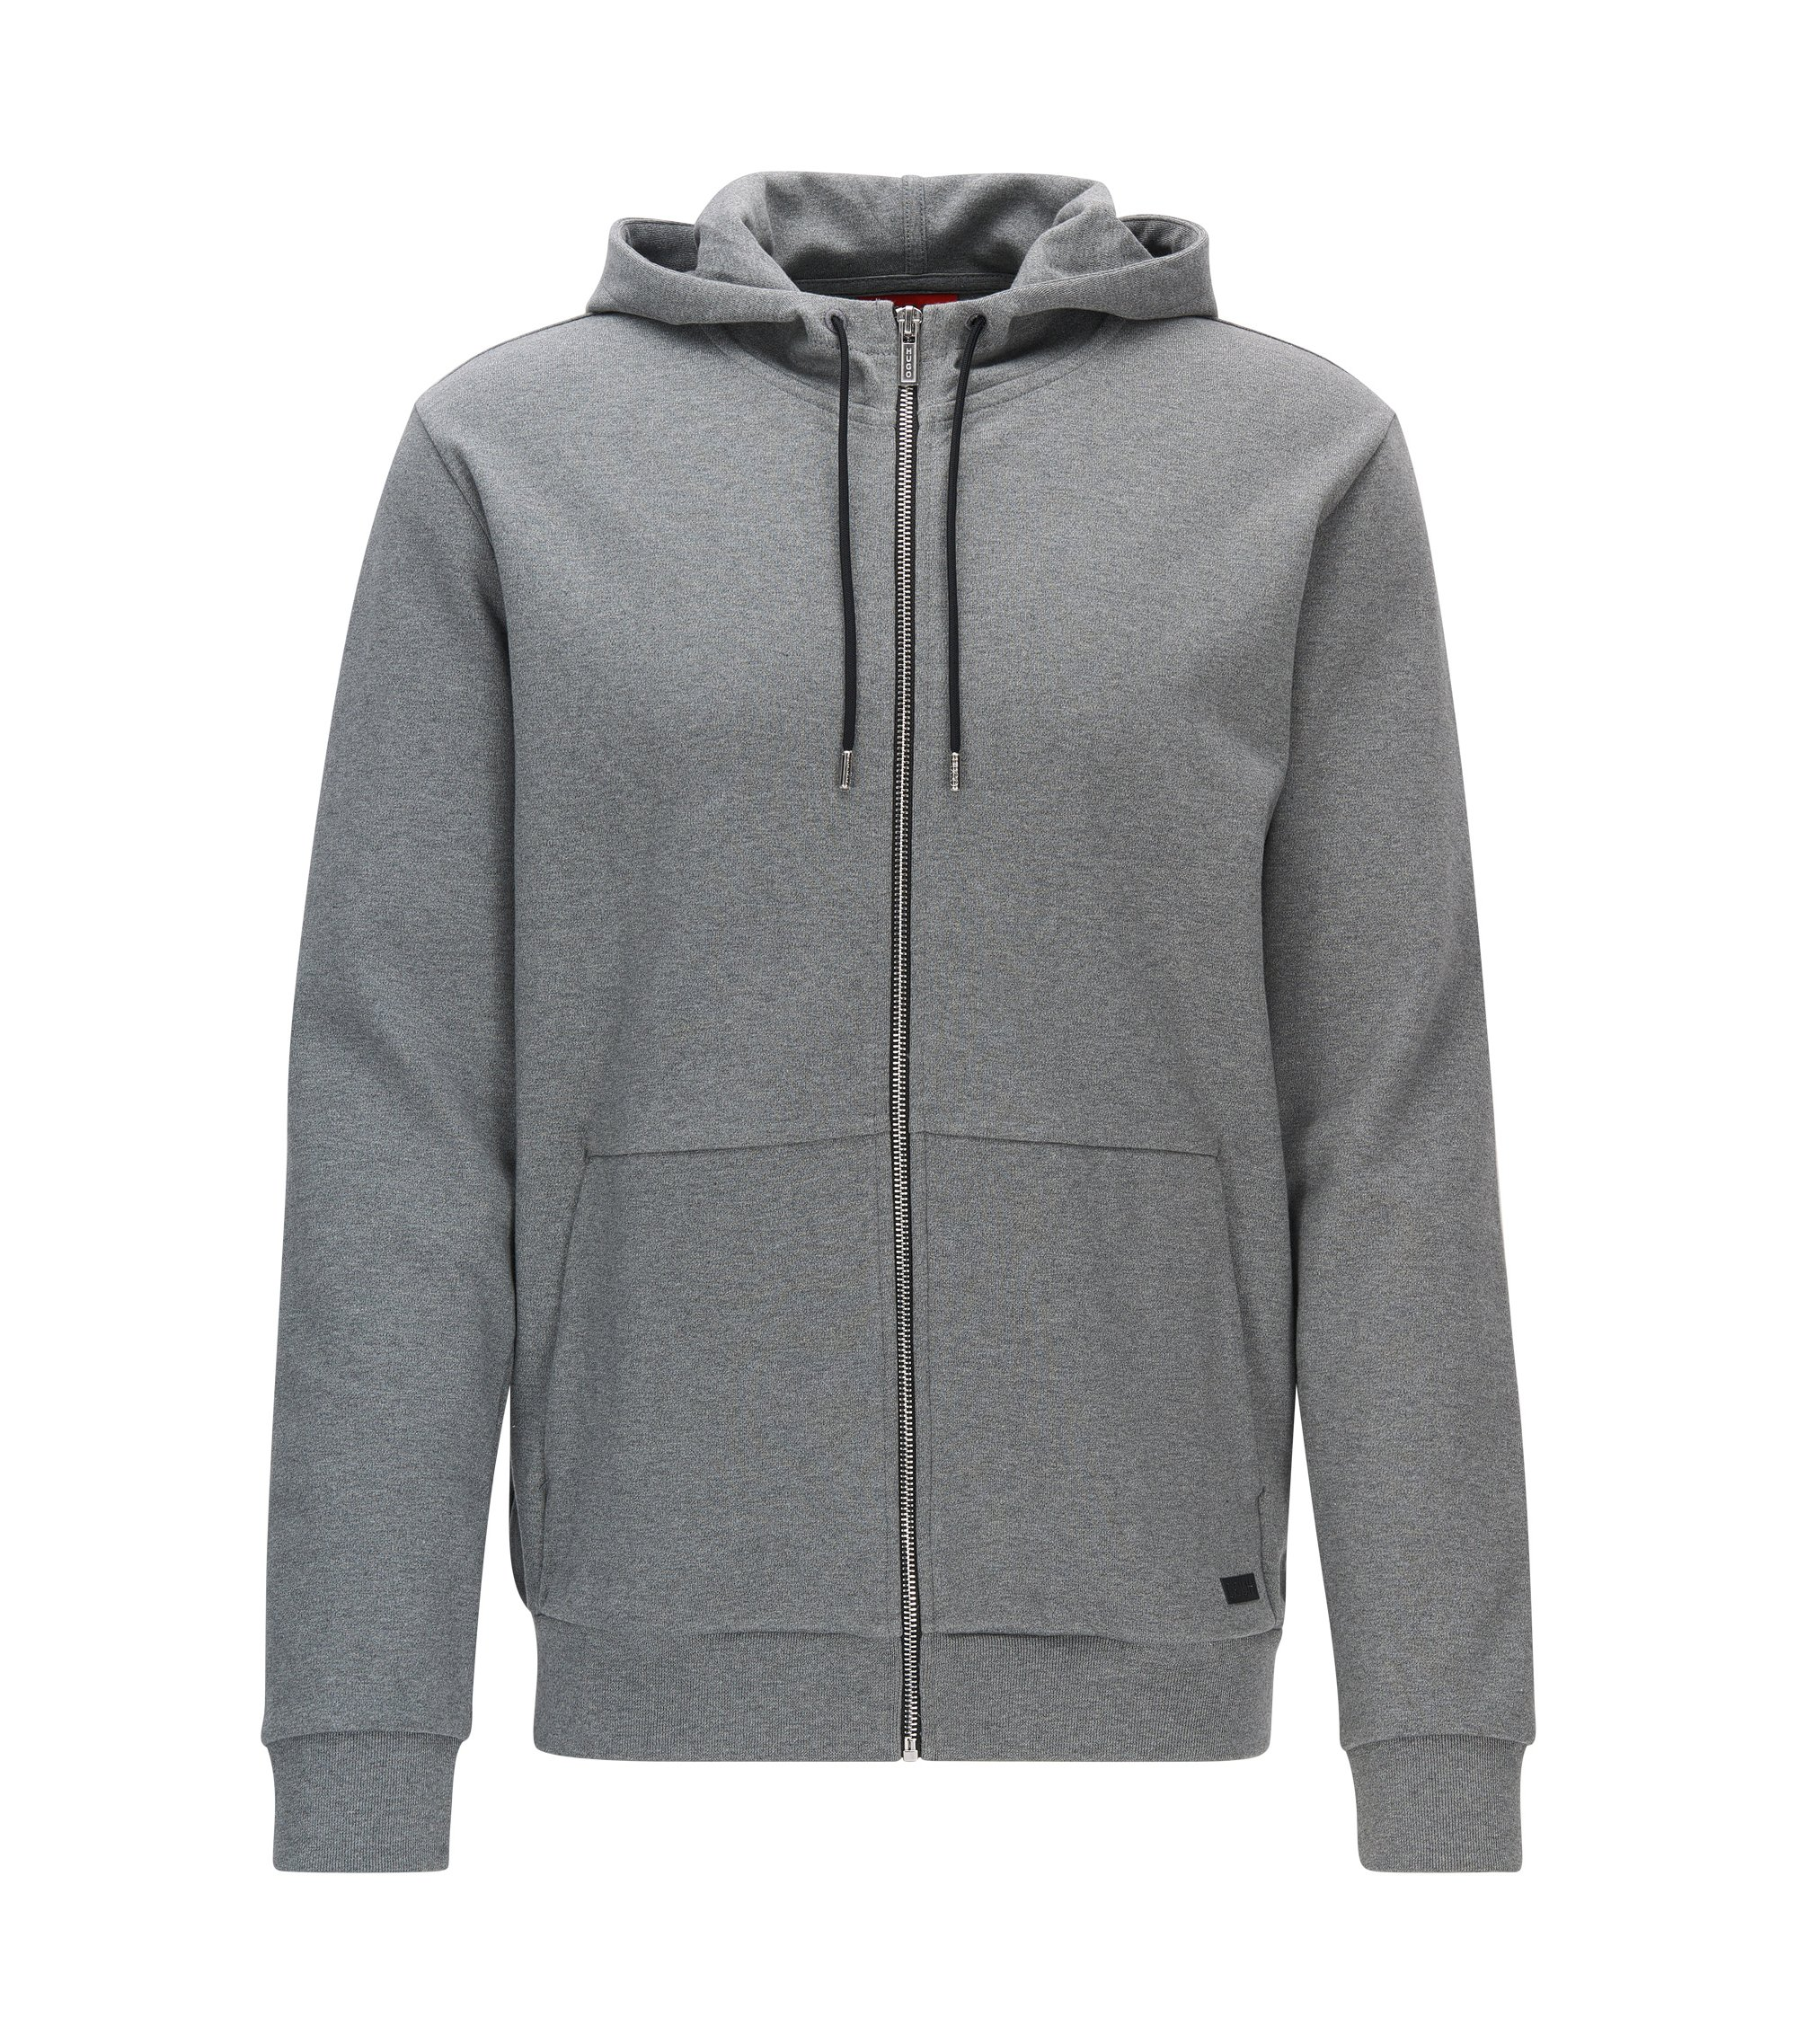 Cotton Full-Zip Hooded Sweater | Dattis, Open Grey